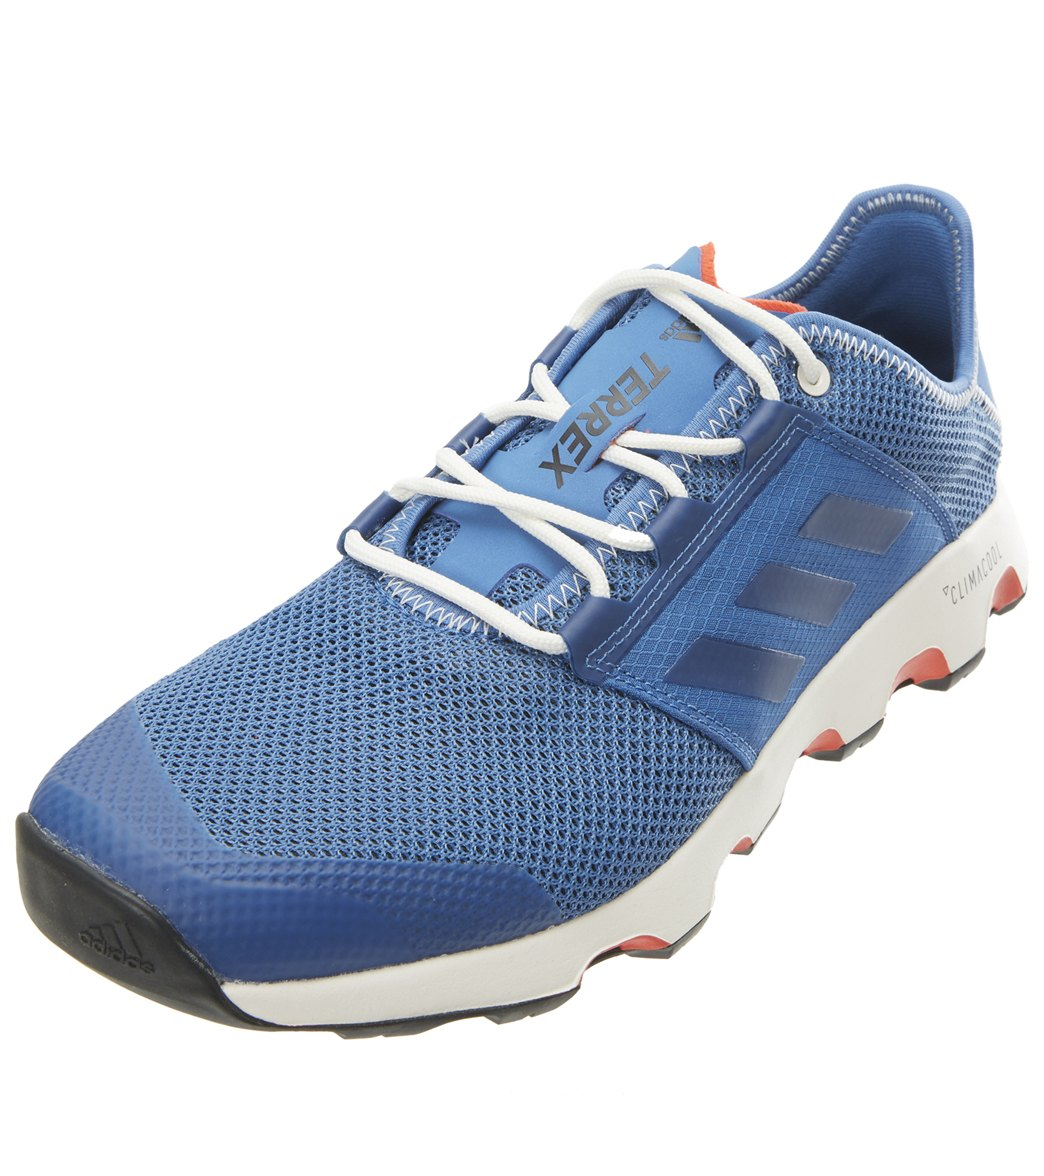 fceab21b6d8d2 Adidas Men s Climacool Voyager Water Shoes at SwimOutlet.com - Free Shipping